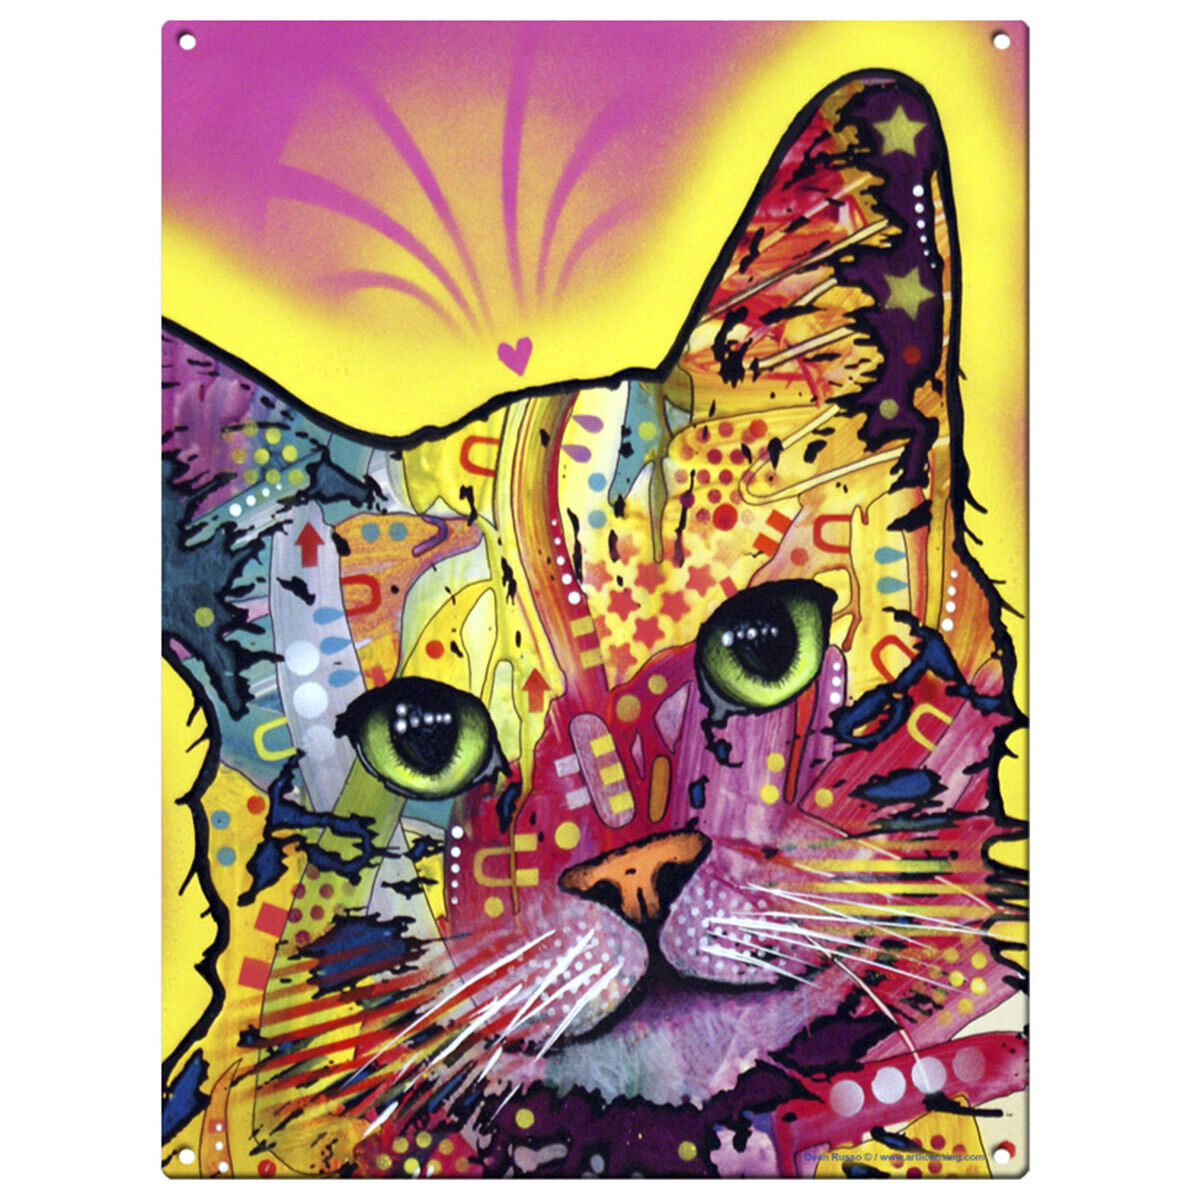 TILT CAT DEAN Russo Pop Art Sign Pet Steel Wall Decor 12 x 16 ...